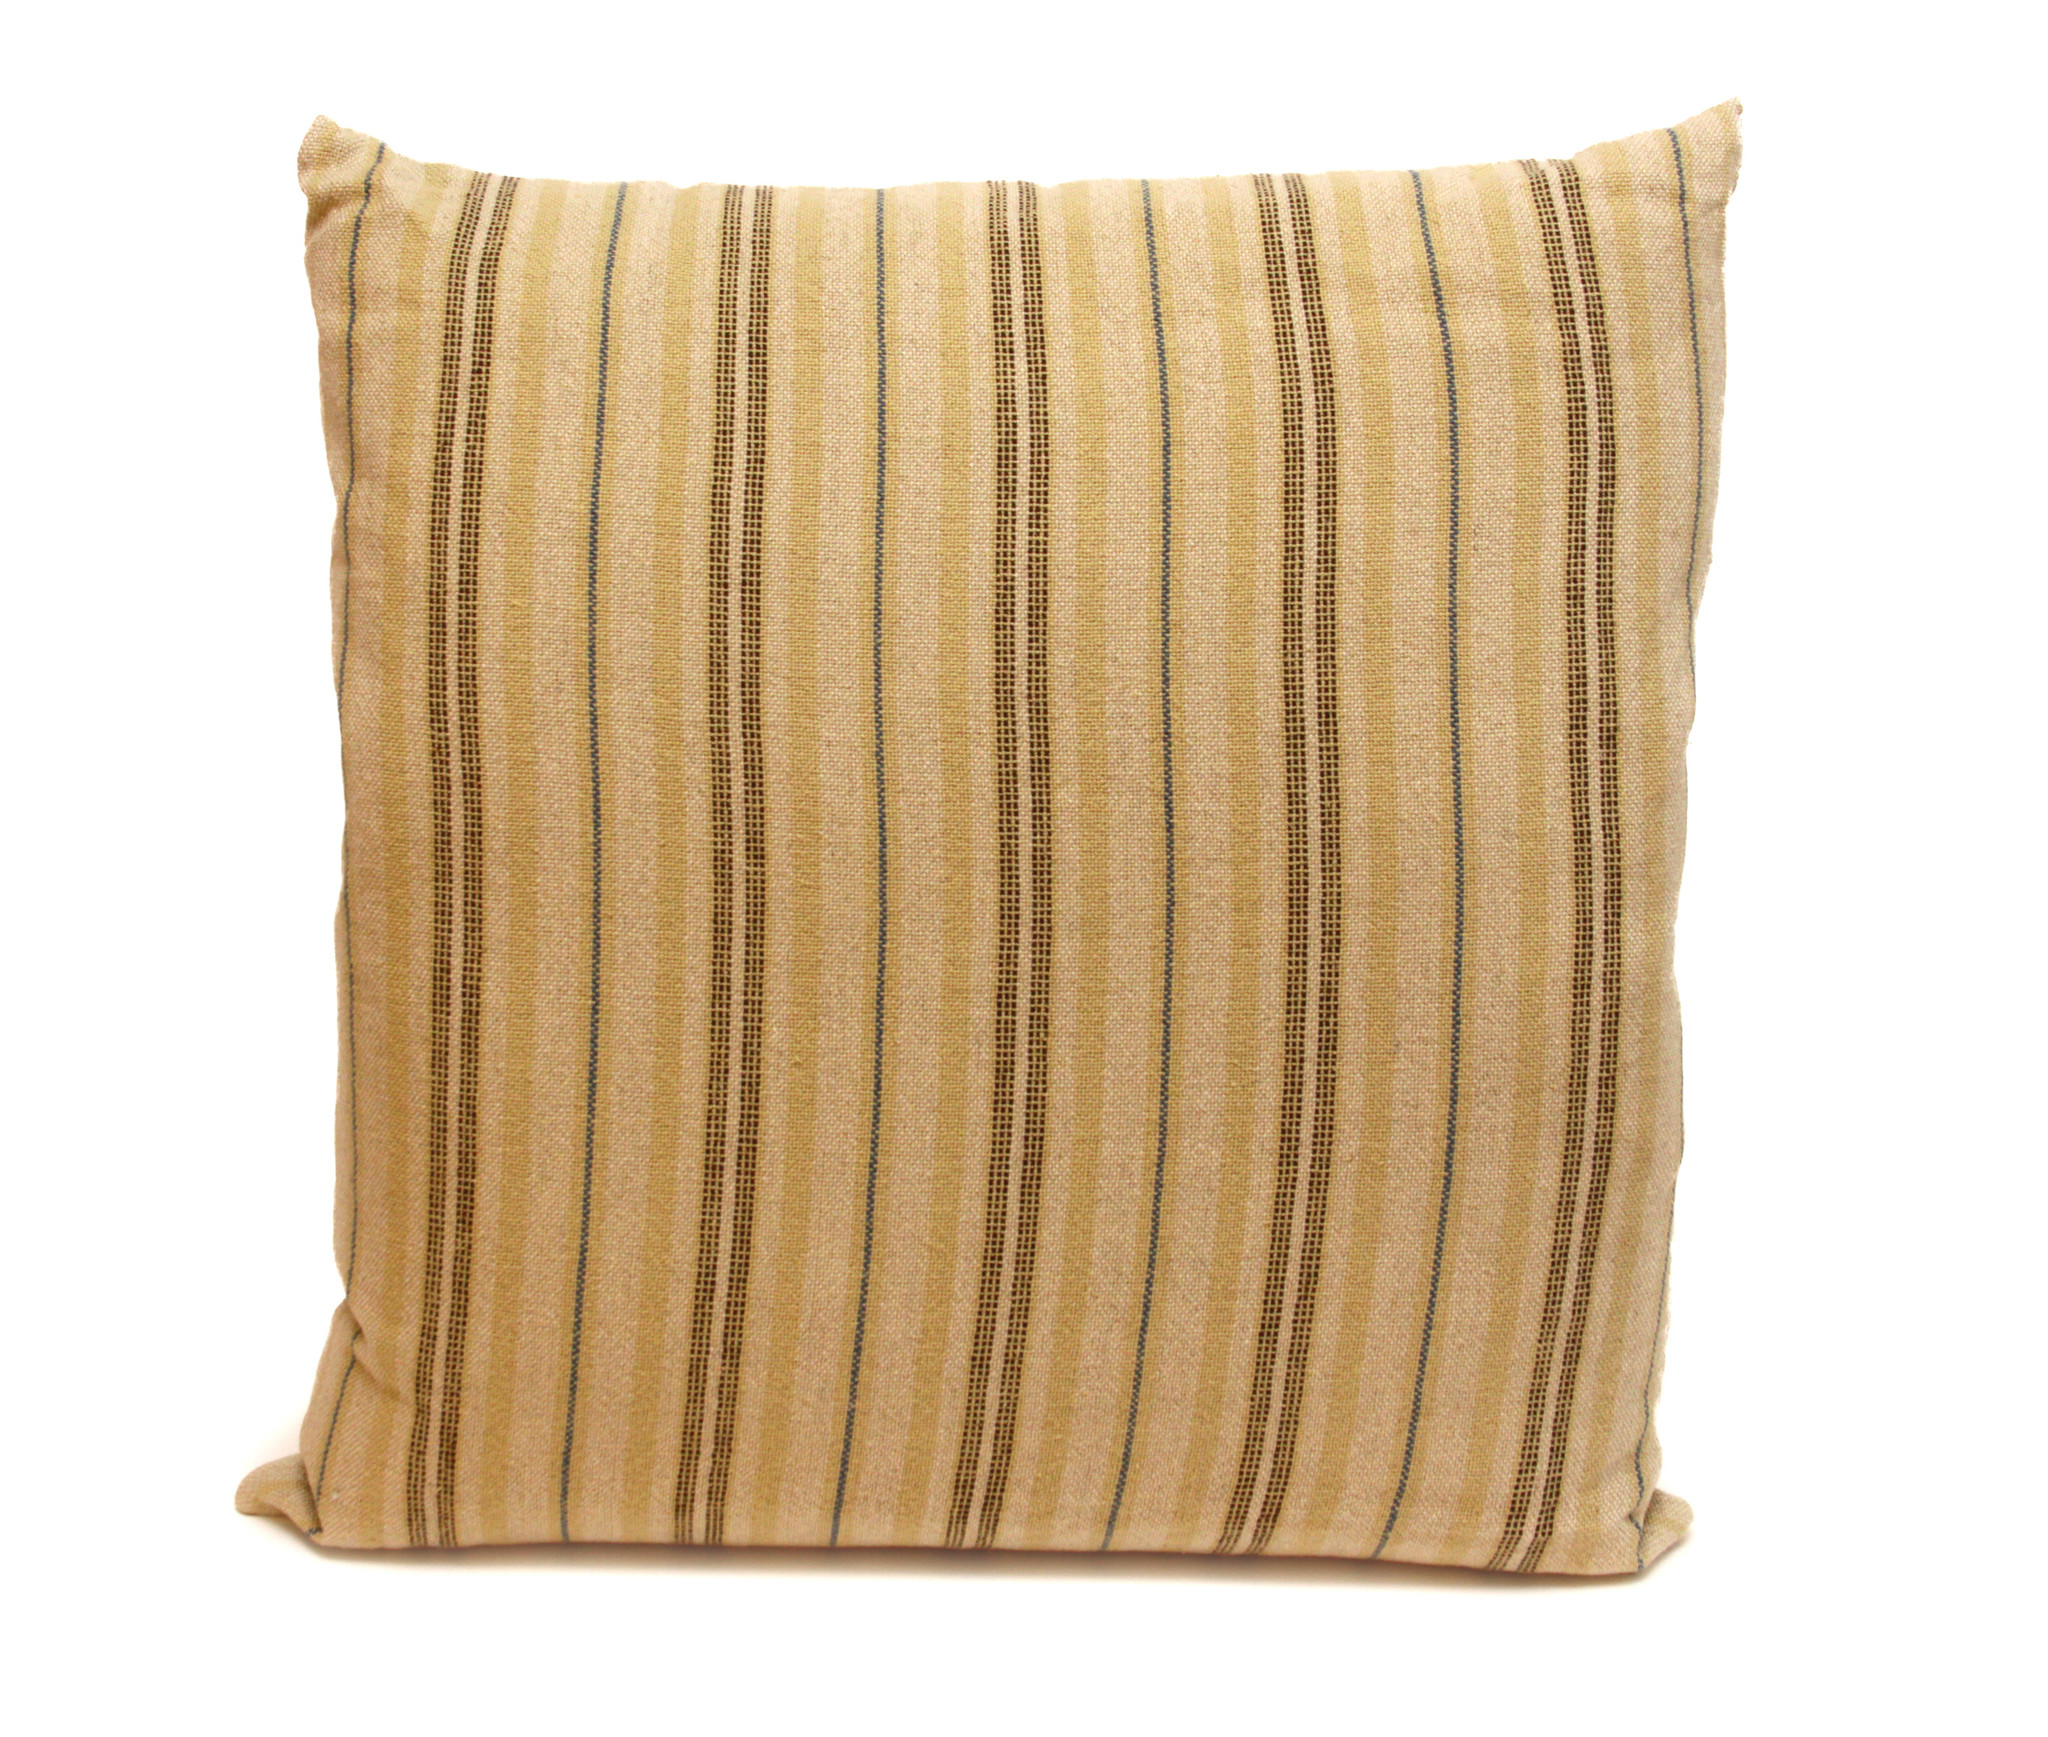 Ticking Striped Square Pillows-3